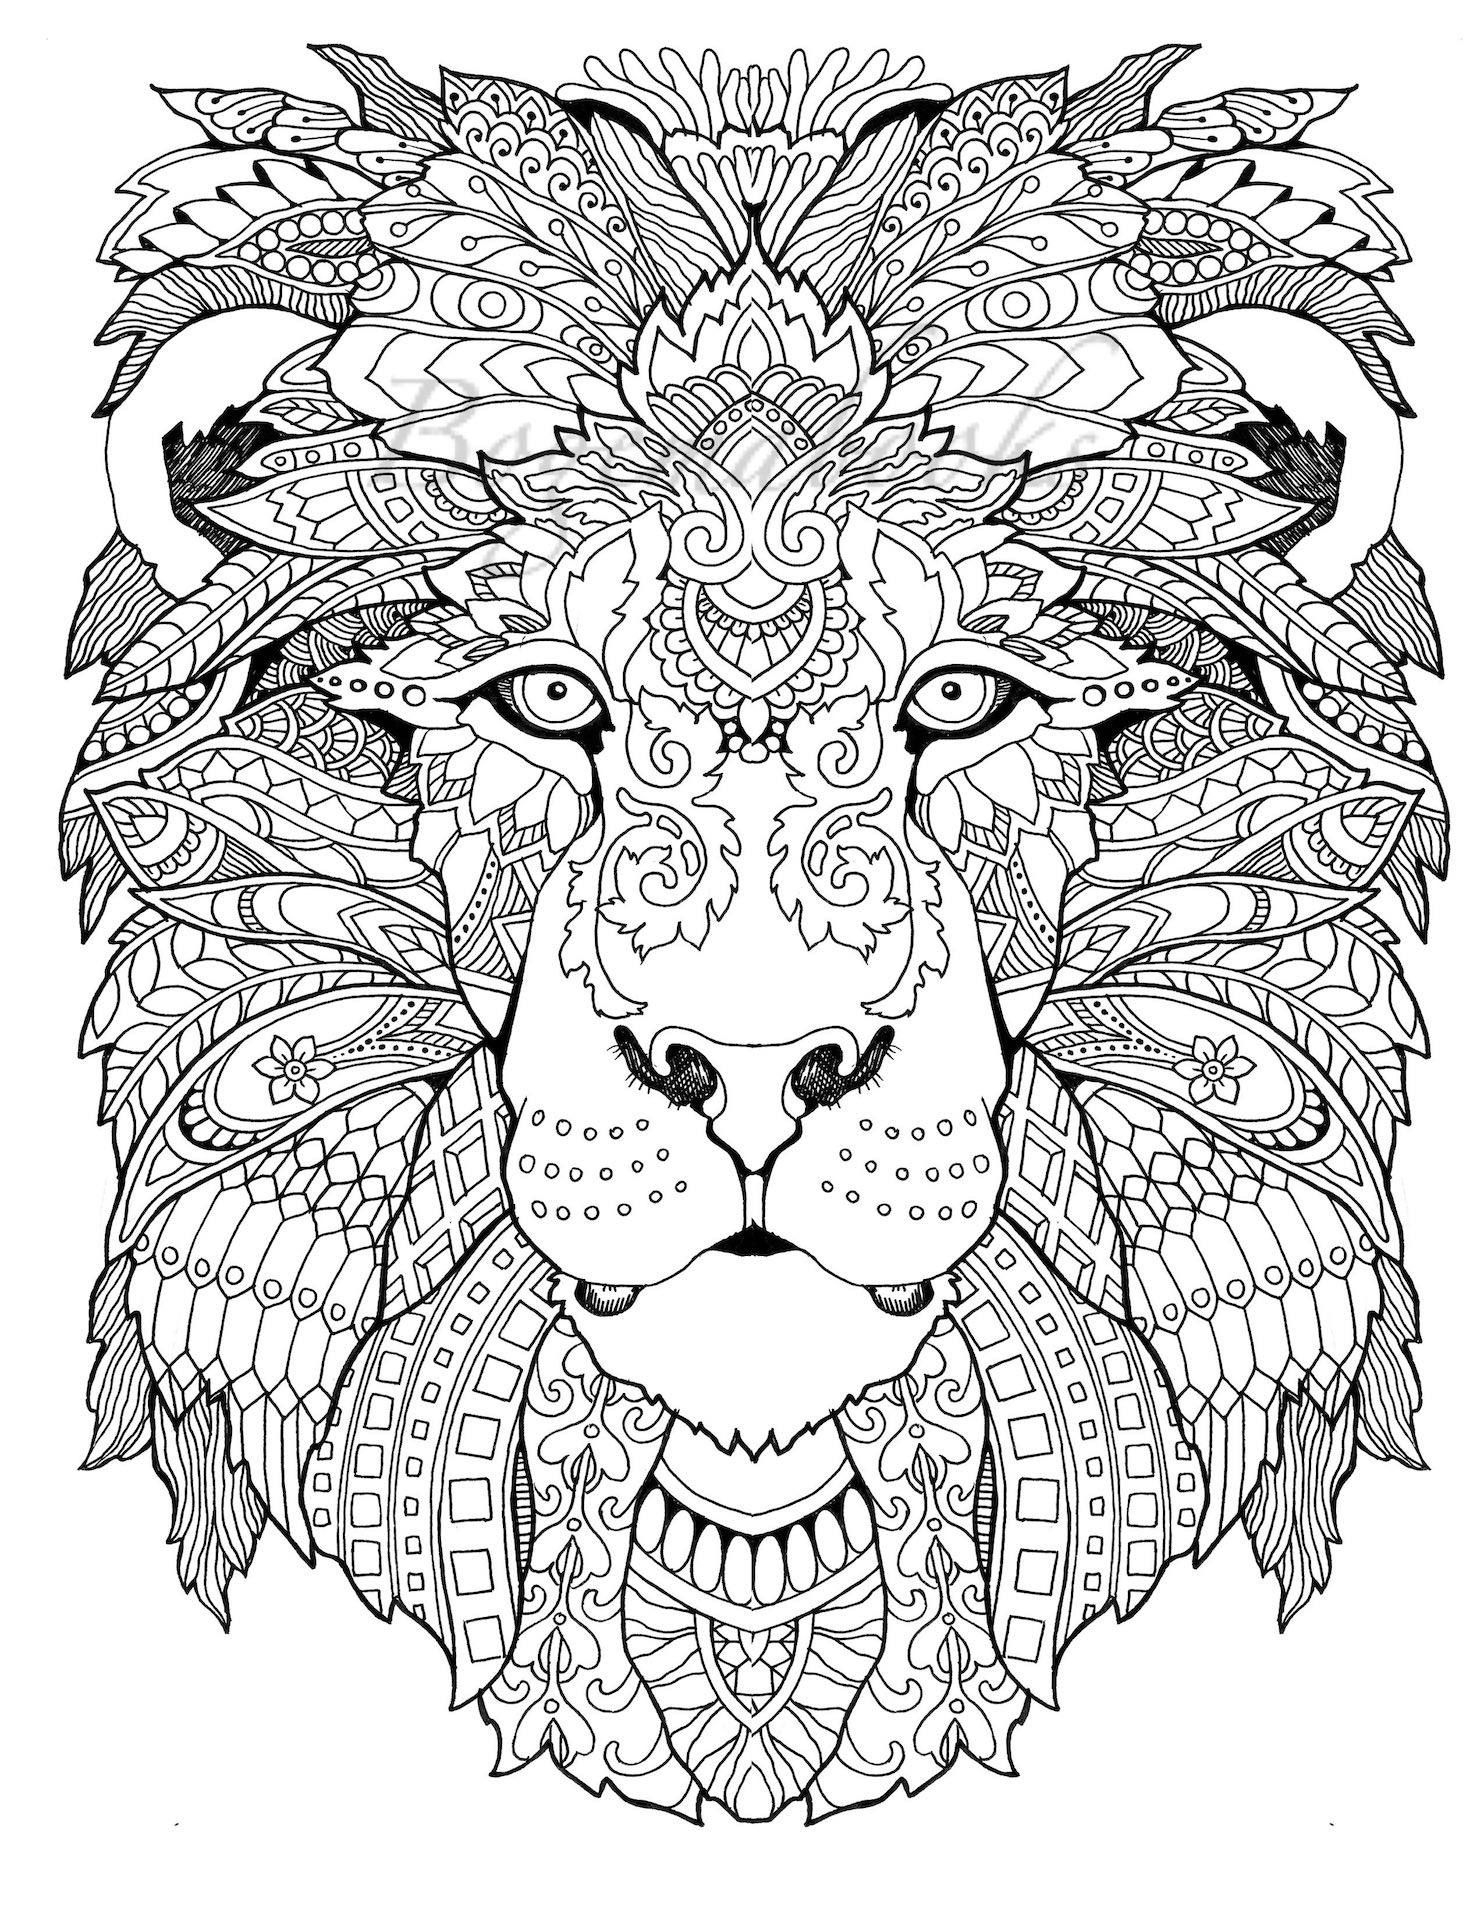 Awesome Animals Adult Coloring Book Coloring Pages Pdf | Awesome - Free Printable Mandalas Pdf